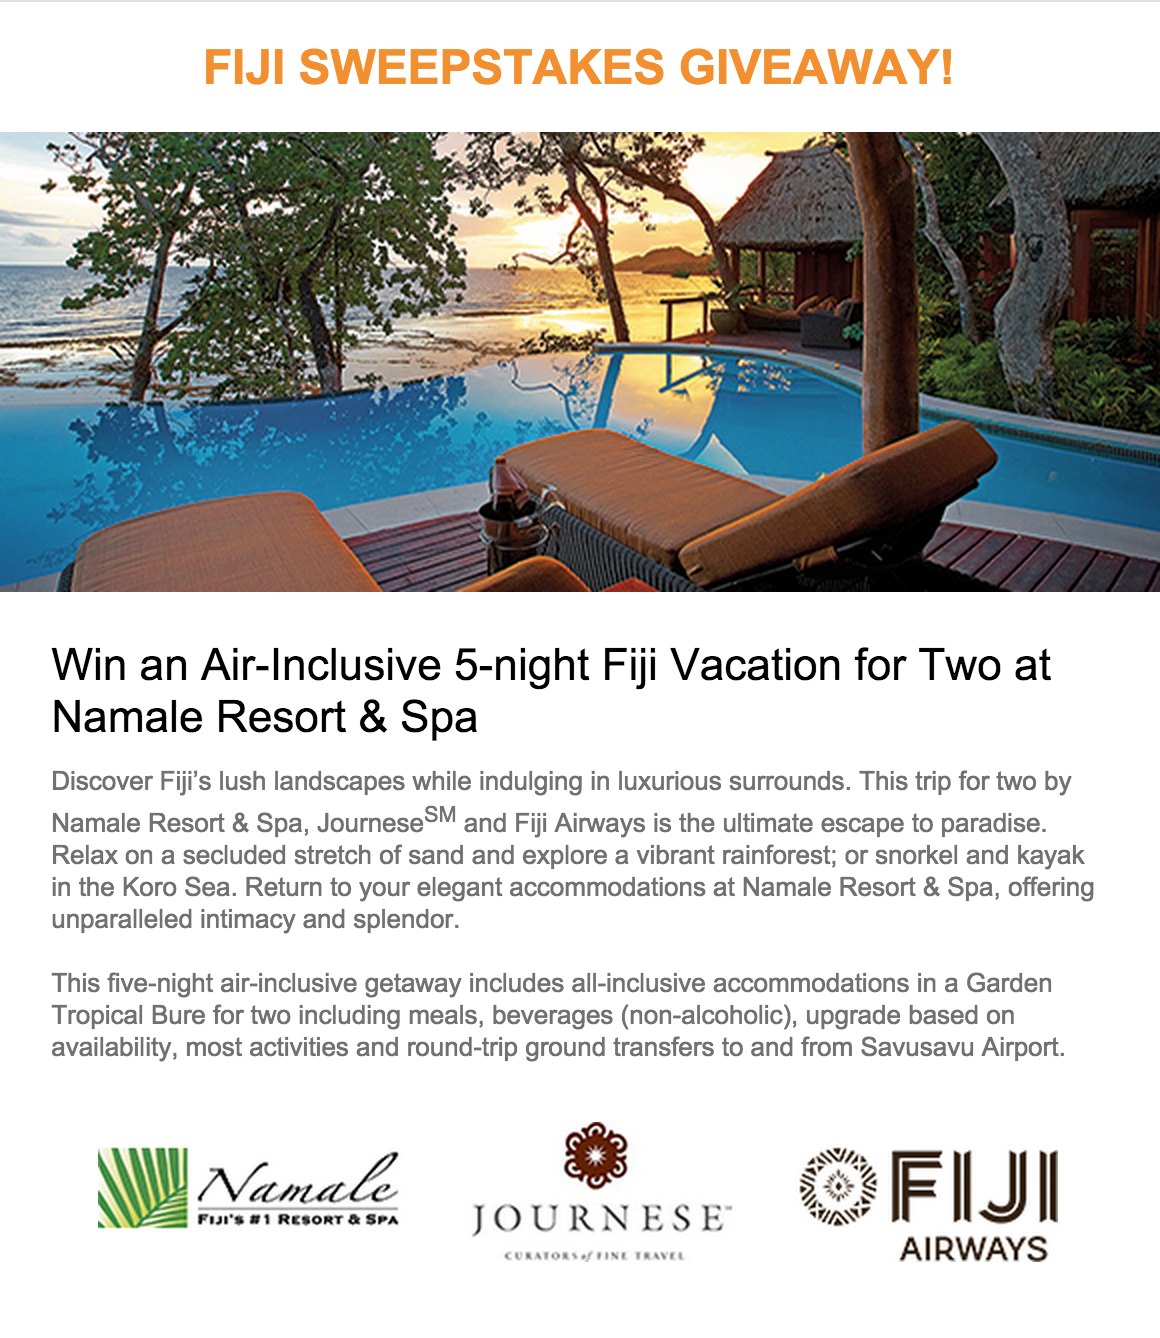 Fiji_Sweepstakes_Giveaway_SaraRaney.com